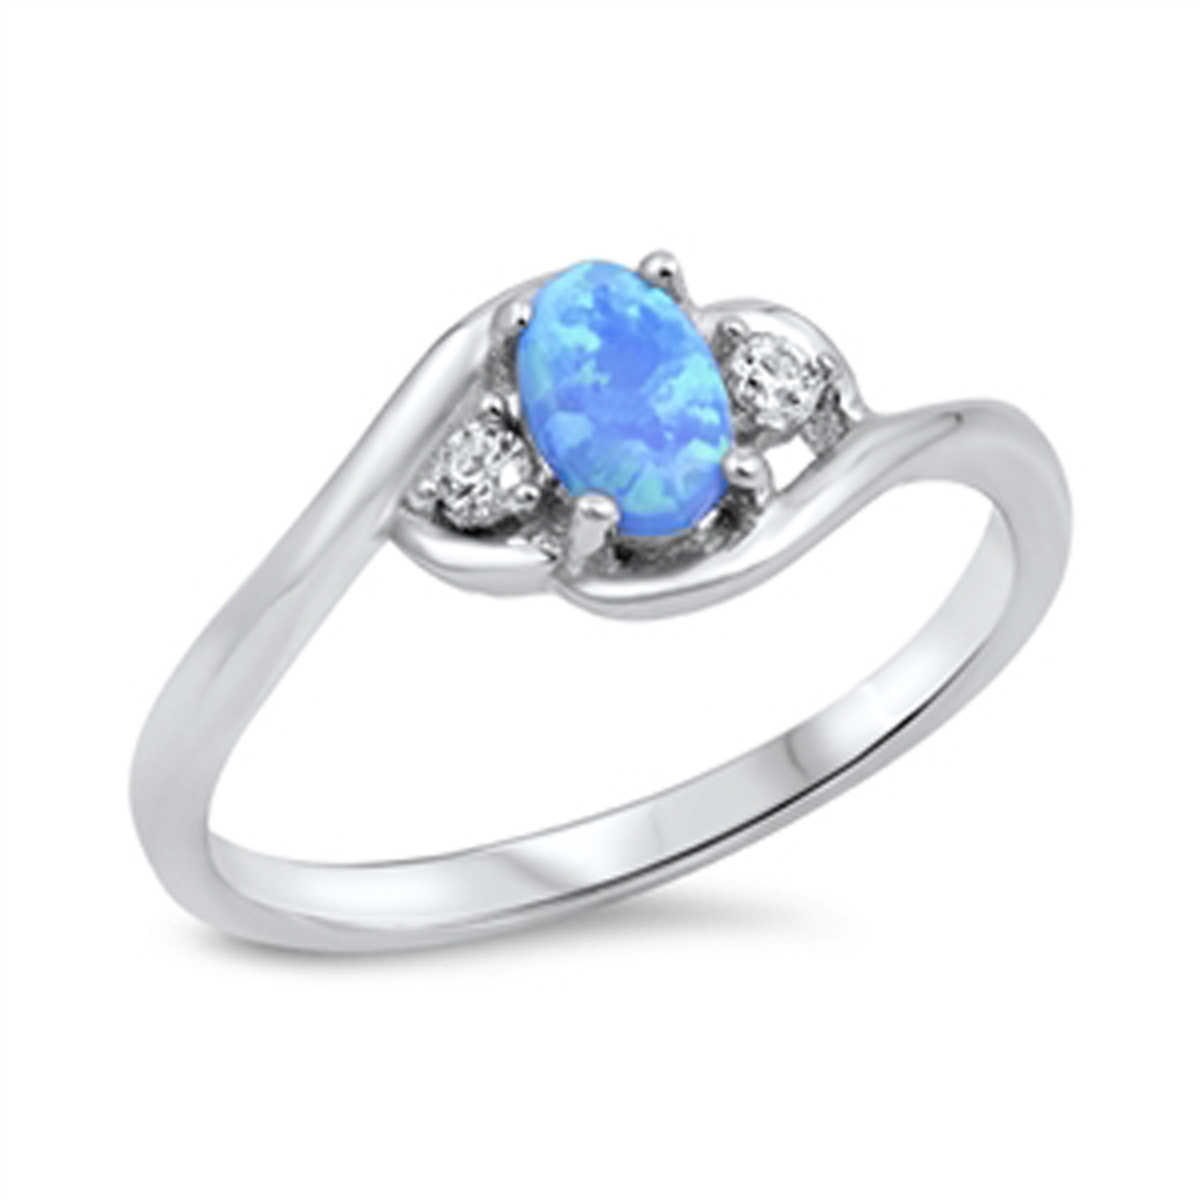 Sterling Silver Stunning Women's Flawless Colorless Cubic Zirconia Blue Simulated Opal Wedding Ring (Sizes 4-10) (Ring Size 7)